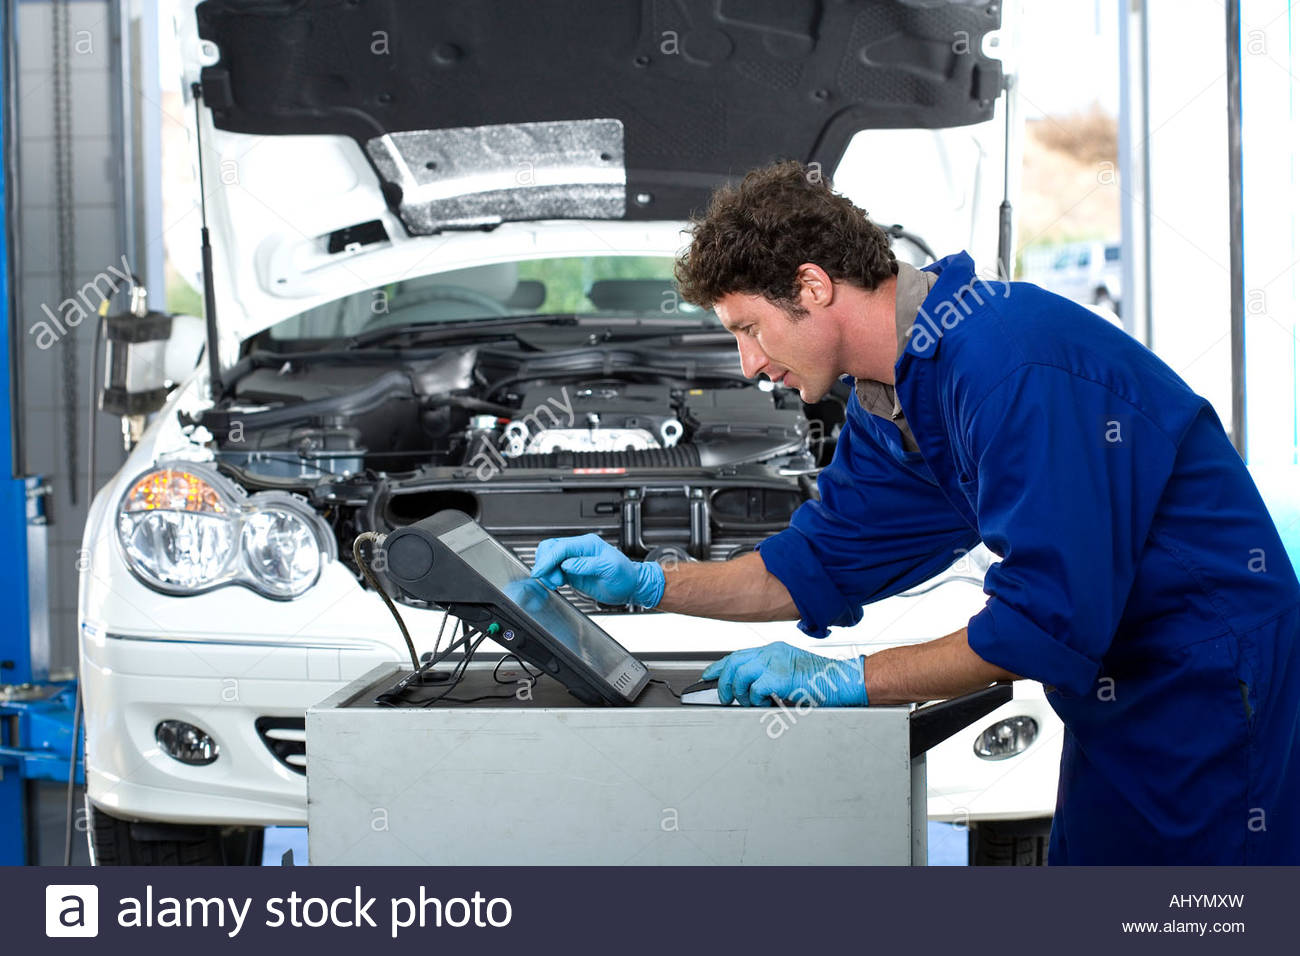 Male Car Mechanic In Blue Overalls Using Computer In